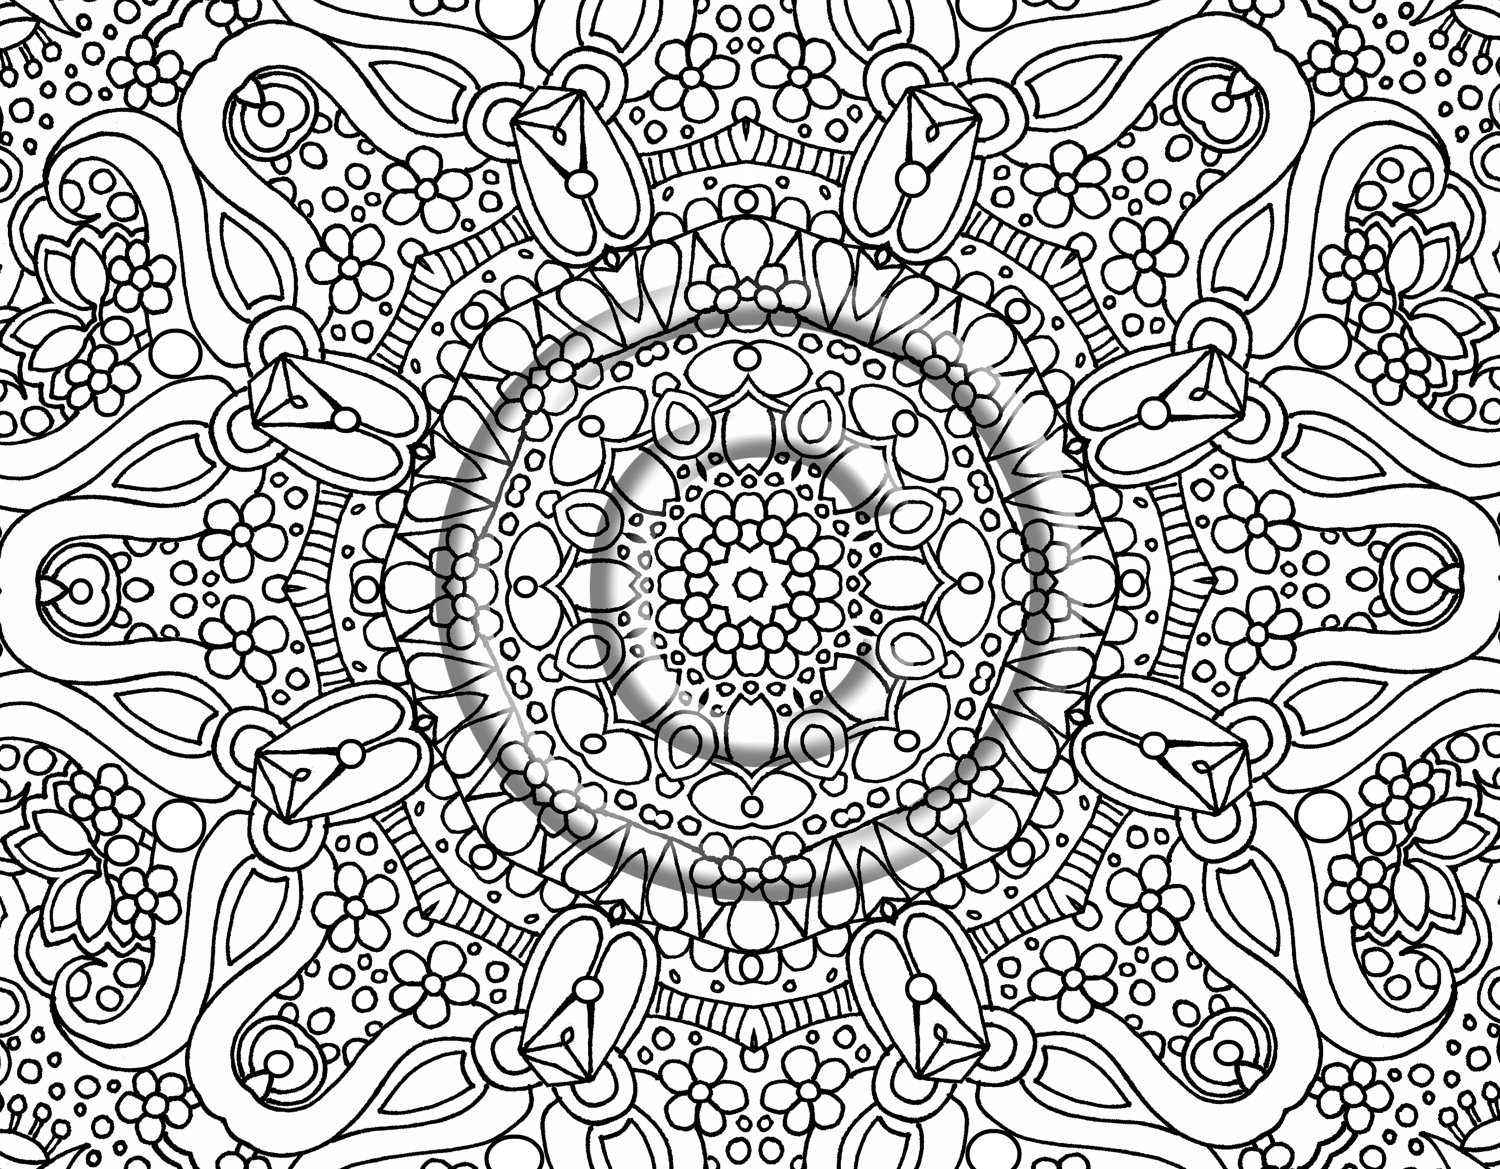 printable tessellation patterns to color tessellation coloring pages free printable to print free color tessellation patterns to printable